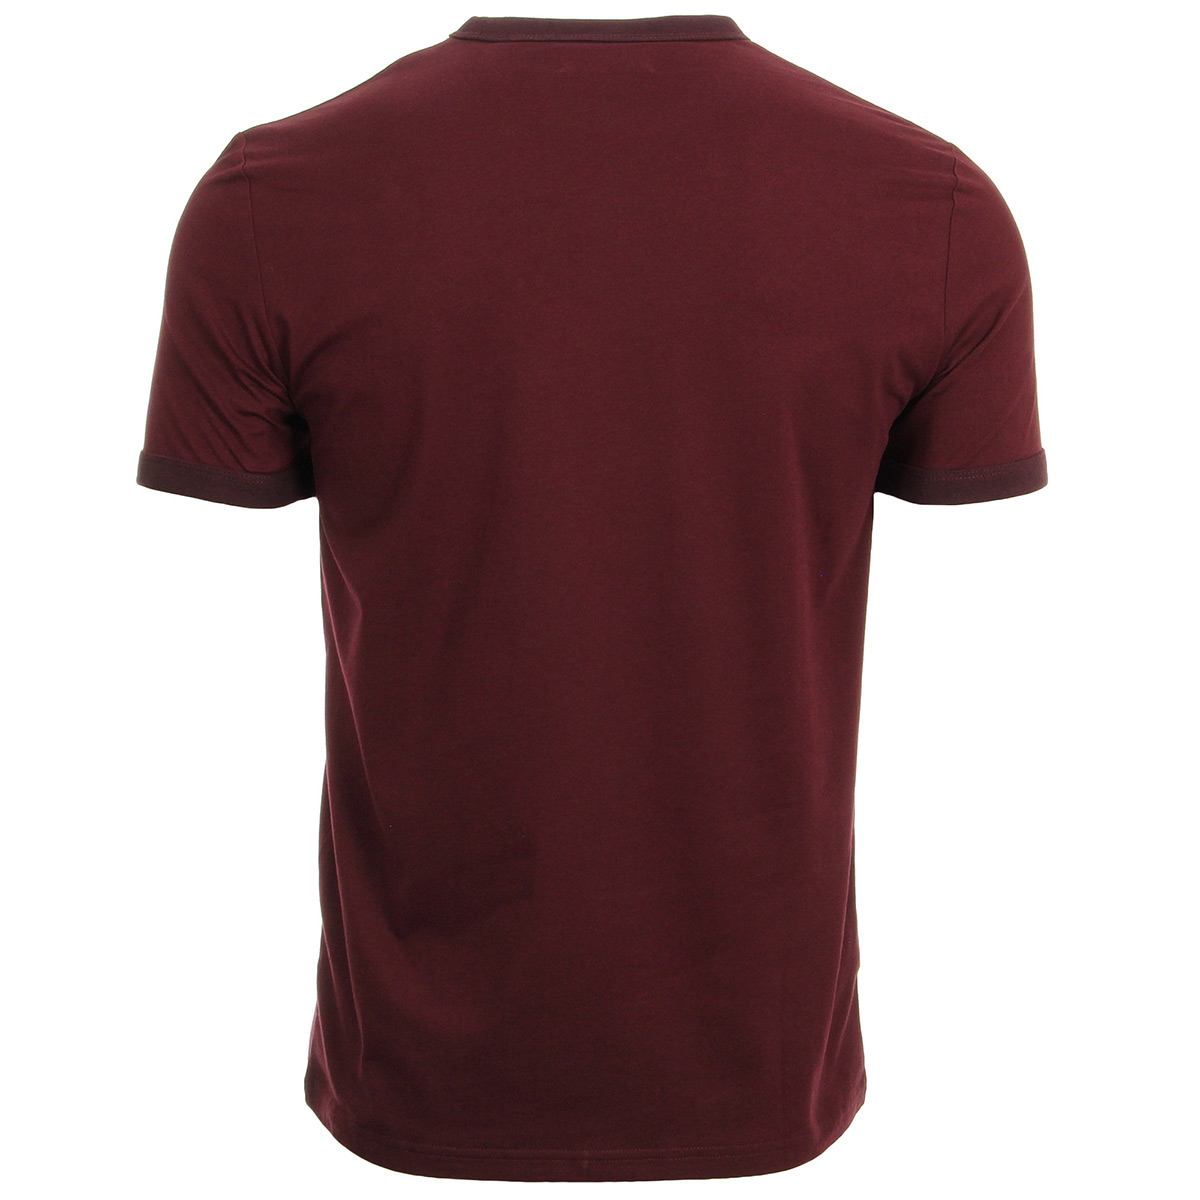 "Fred Perry Ringer T-Shirt ""Port"" M3519122, T-Shirts homme"